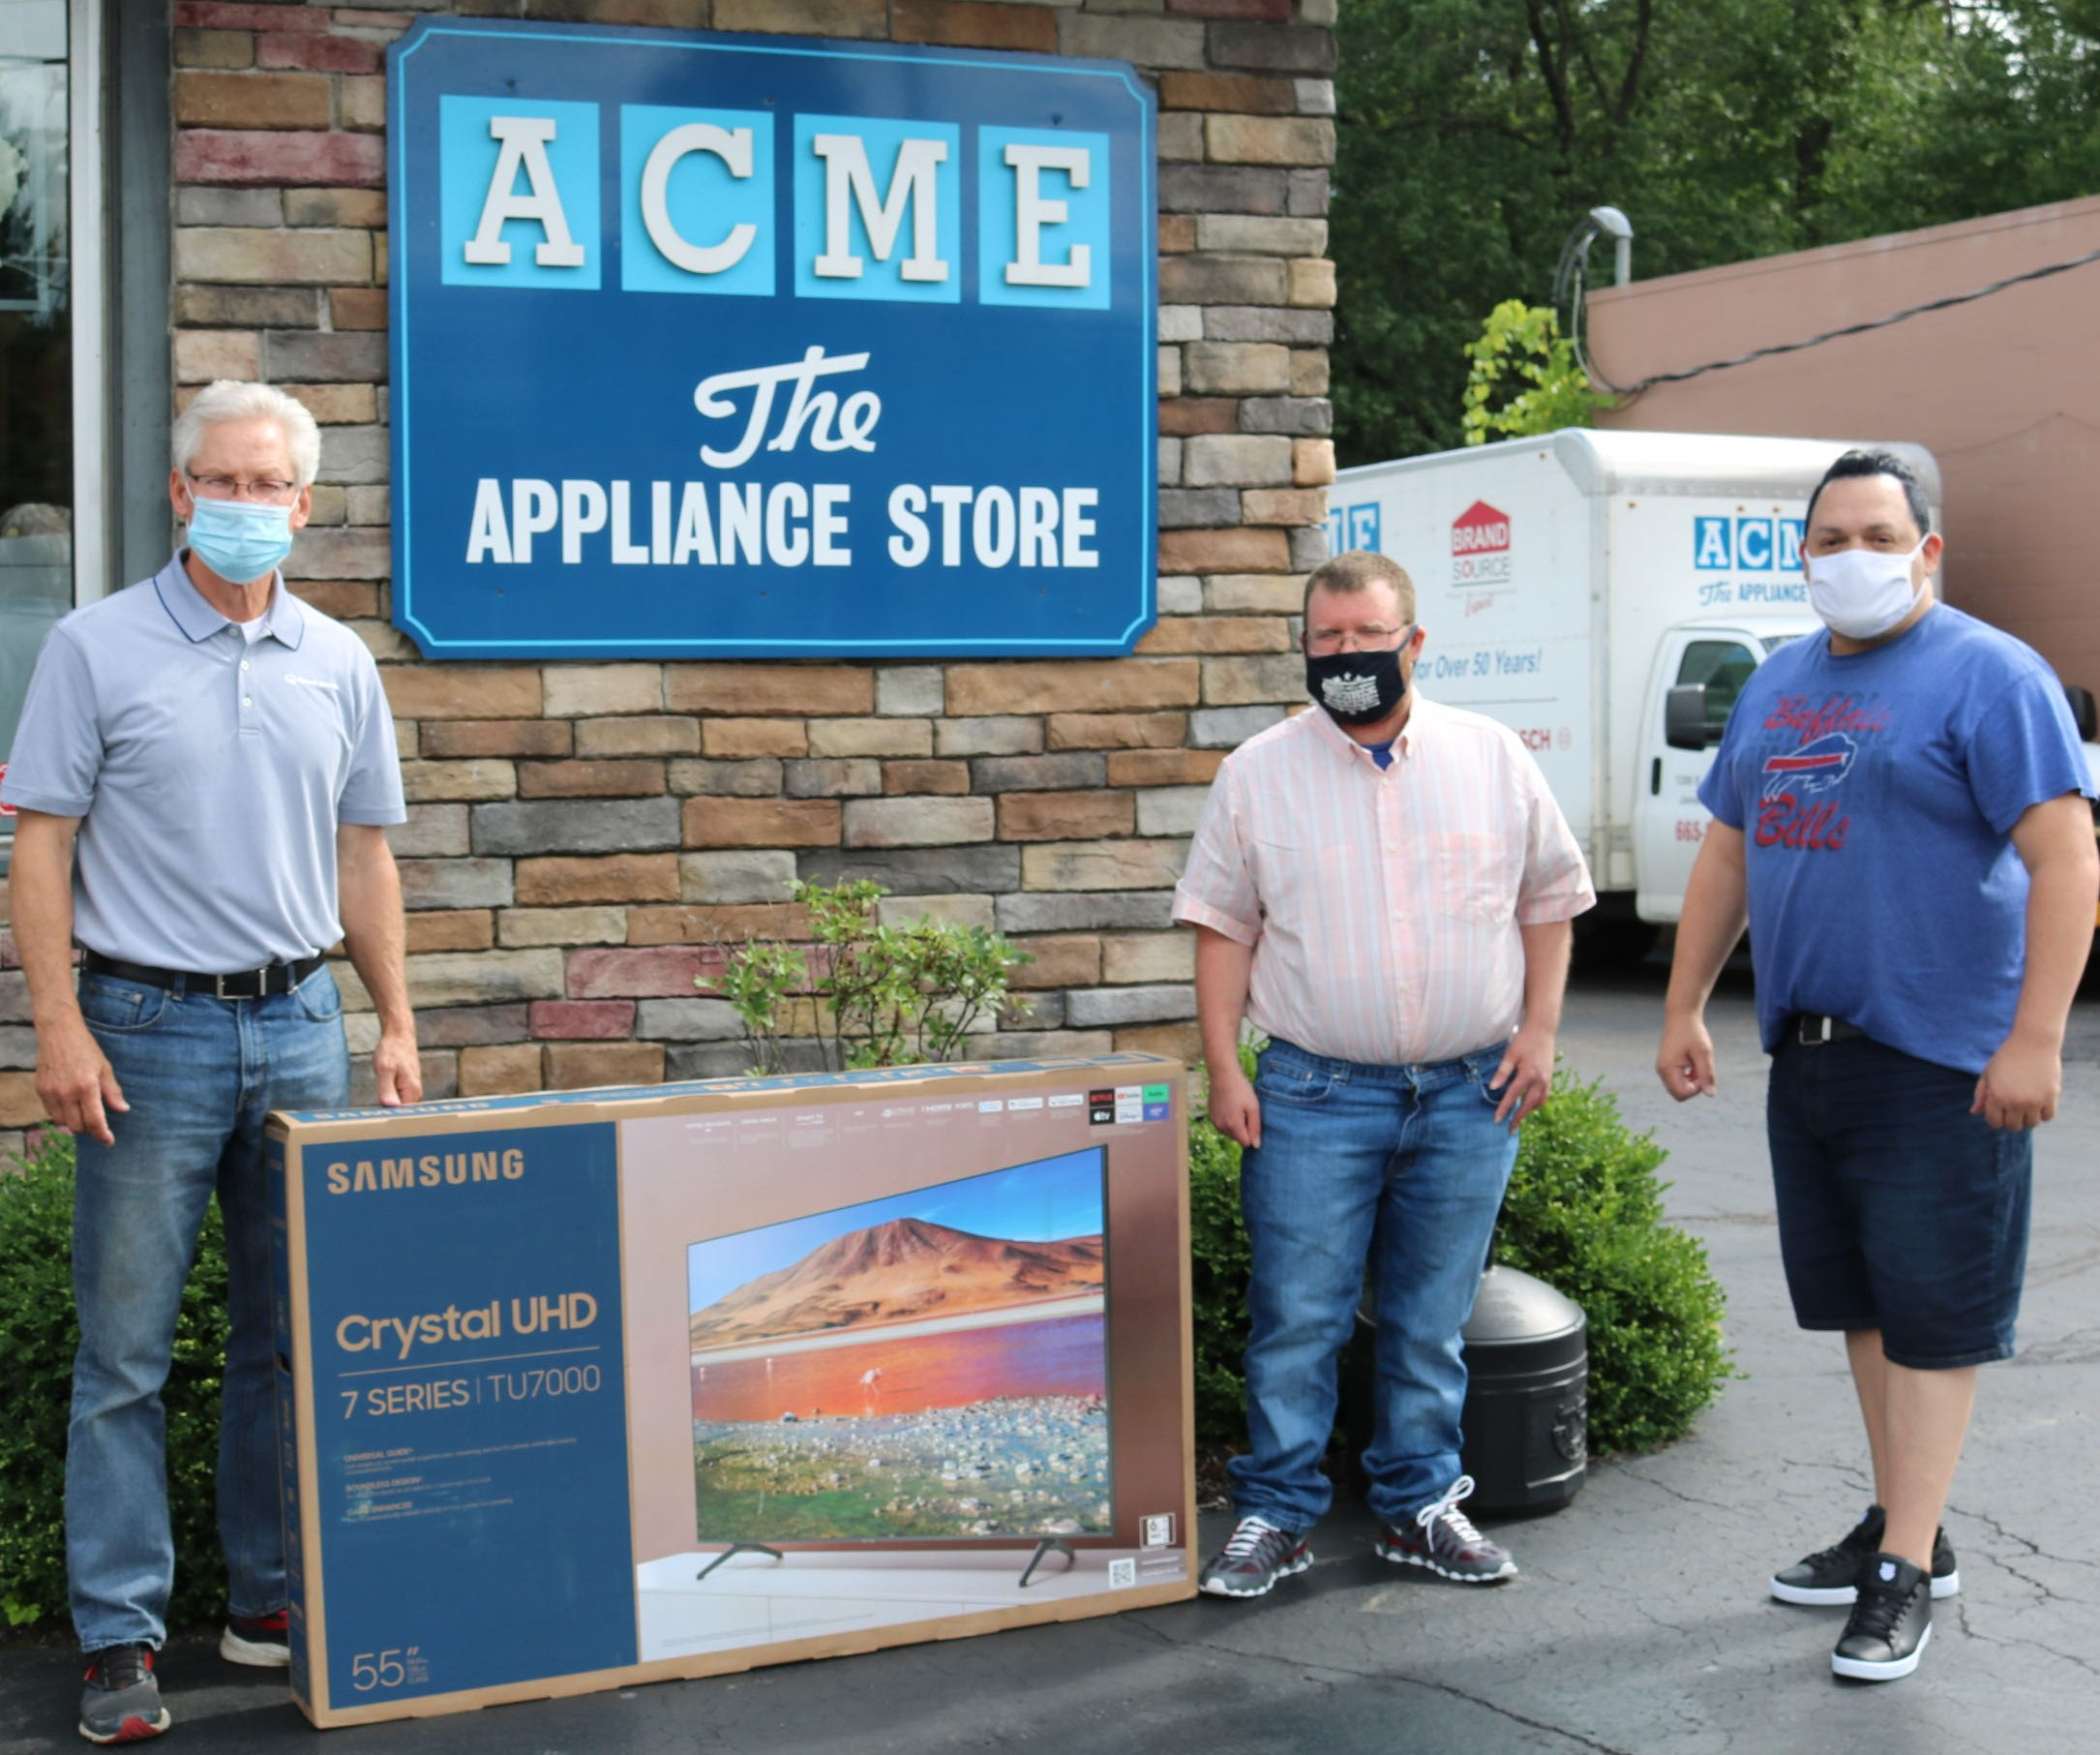 Pictured from left are Dan Hocking, co-owner of ACME The Appliance Store; Steven Rodgers, who was able to attend a Buffalo Bills game thanks to the WOW Fund; and Marcos Figueroa, who was the driving force in creating the WOW Fund.